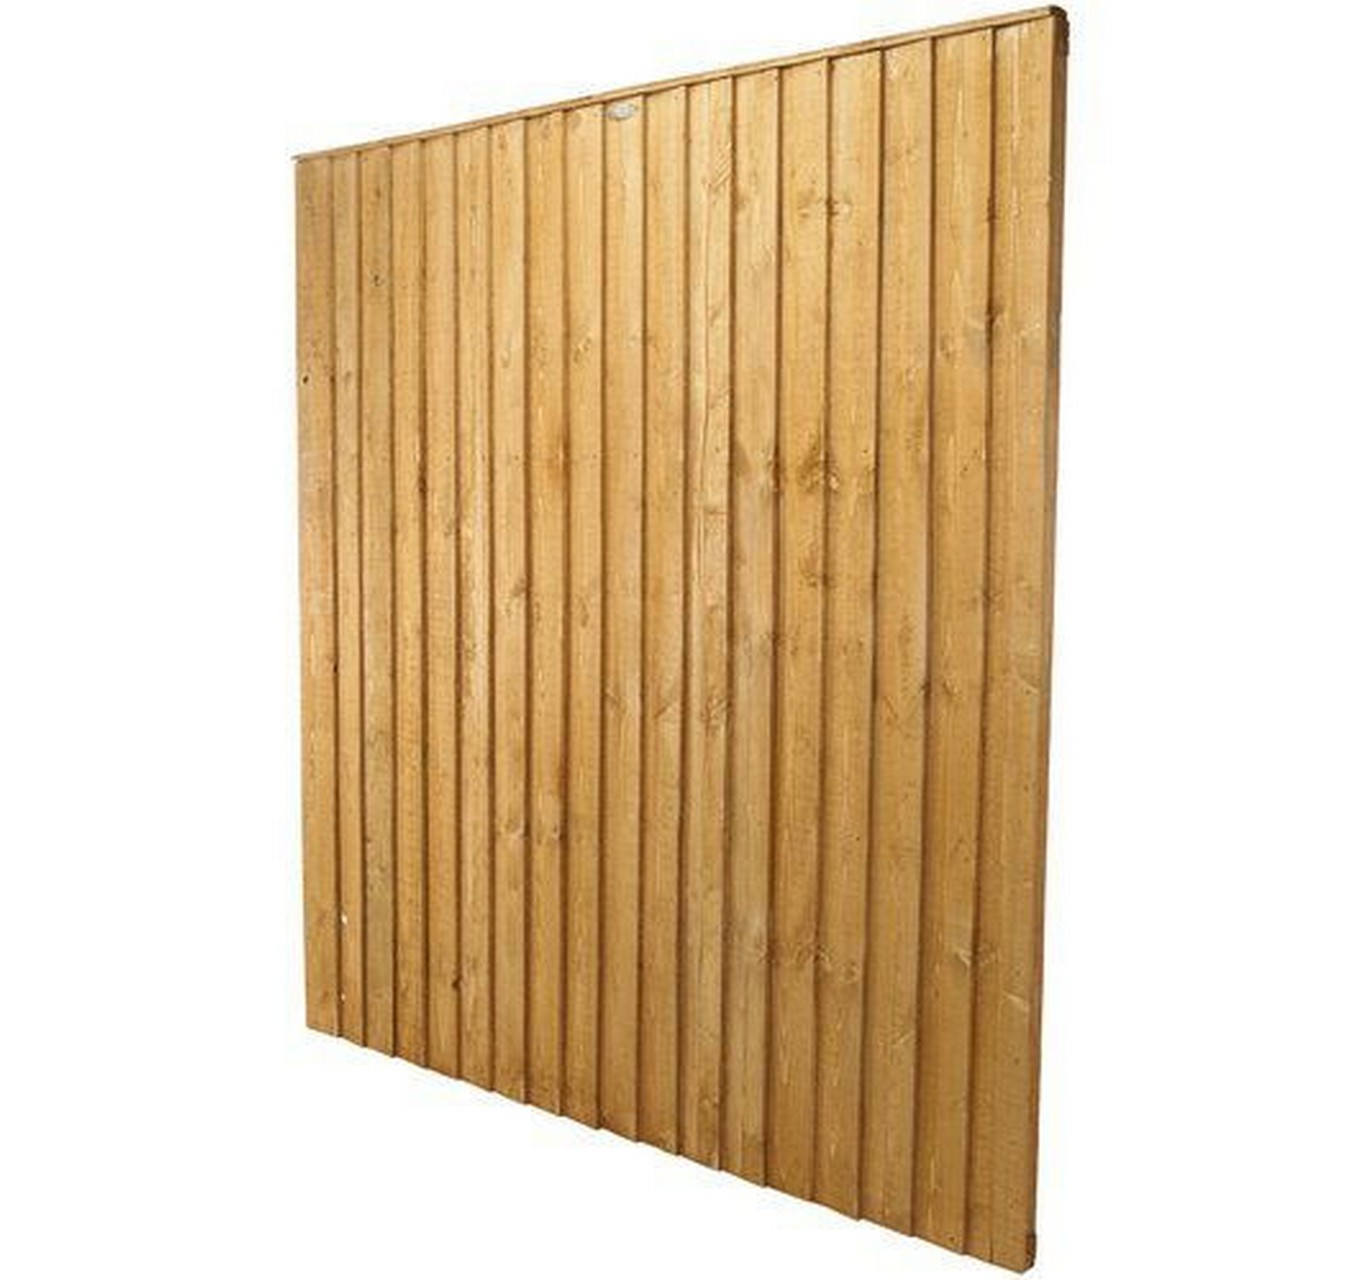 6x5ft Feather Edge Fence Panel